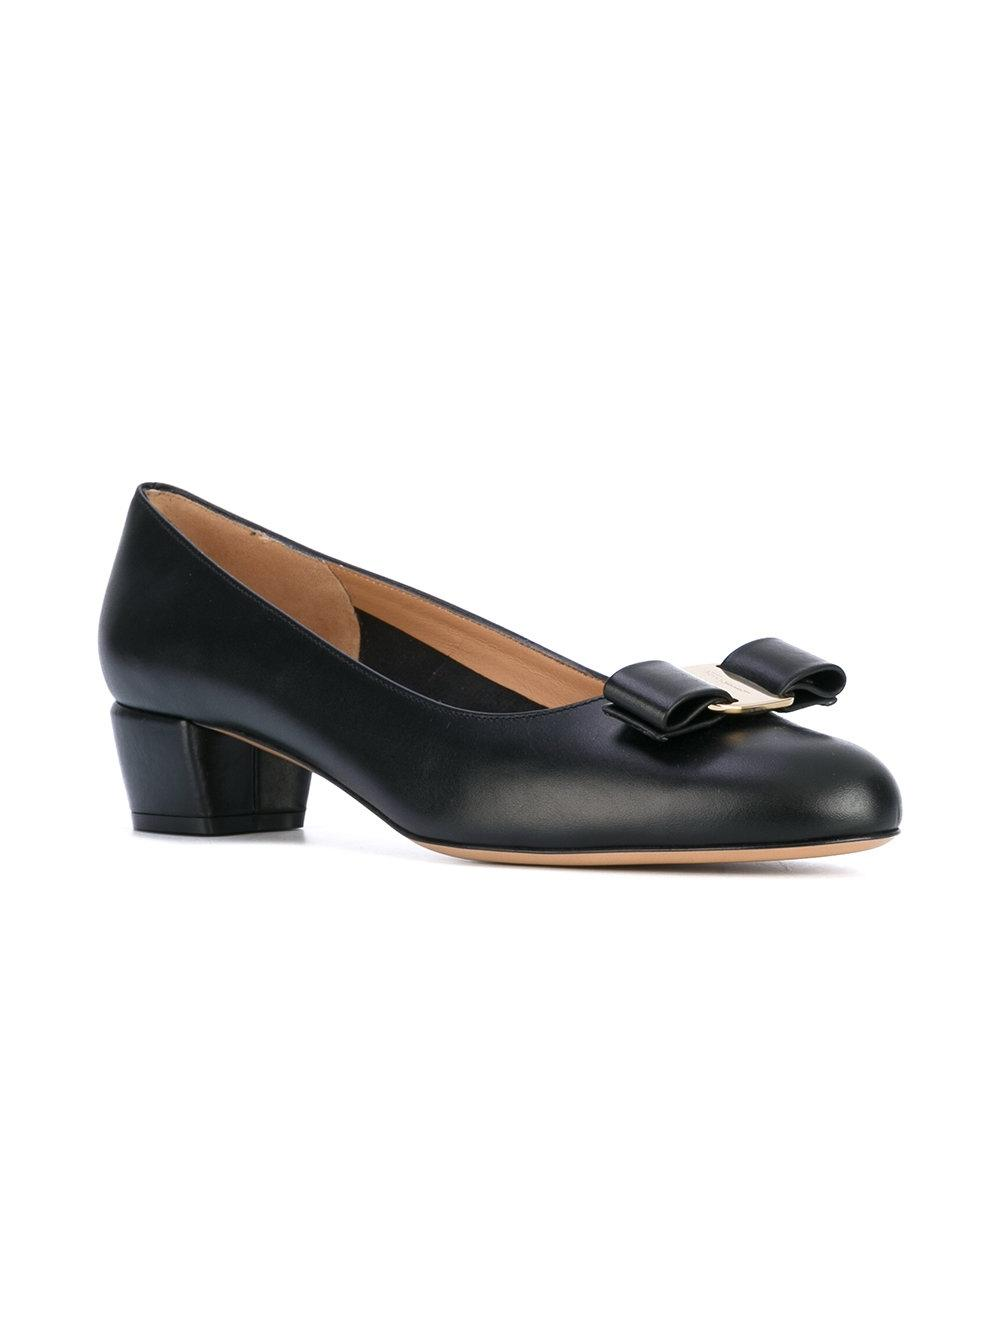 Salvatore Ferragamo Black New Vara Leather B Pumps Size US 8.5 Regular (M, B)